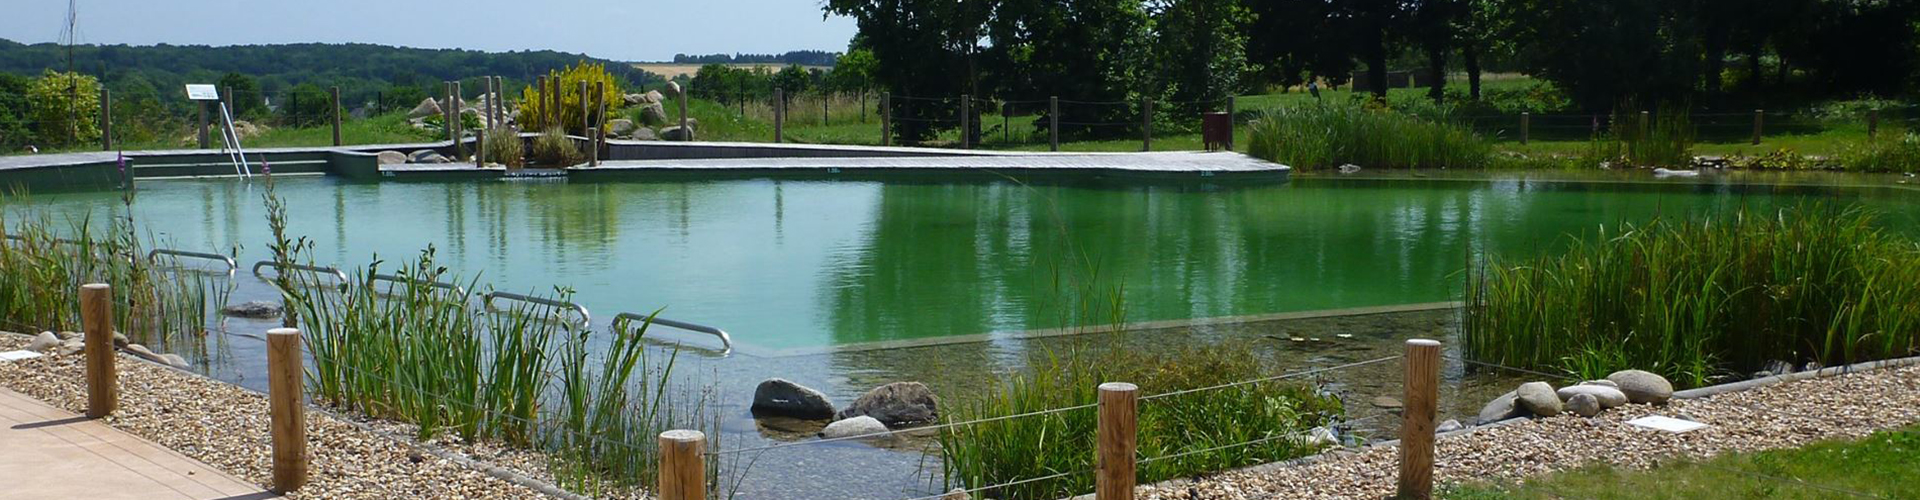 Espace bassin naturel parc natur o for Tarif piscine naturelle